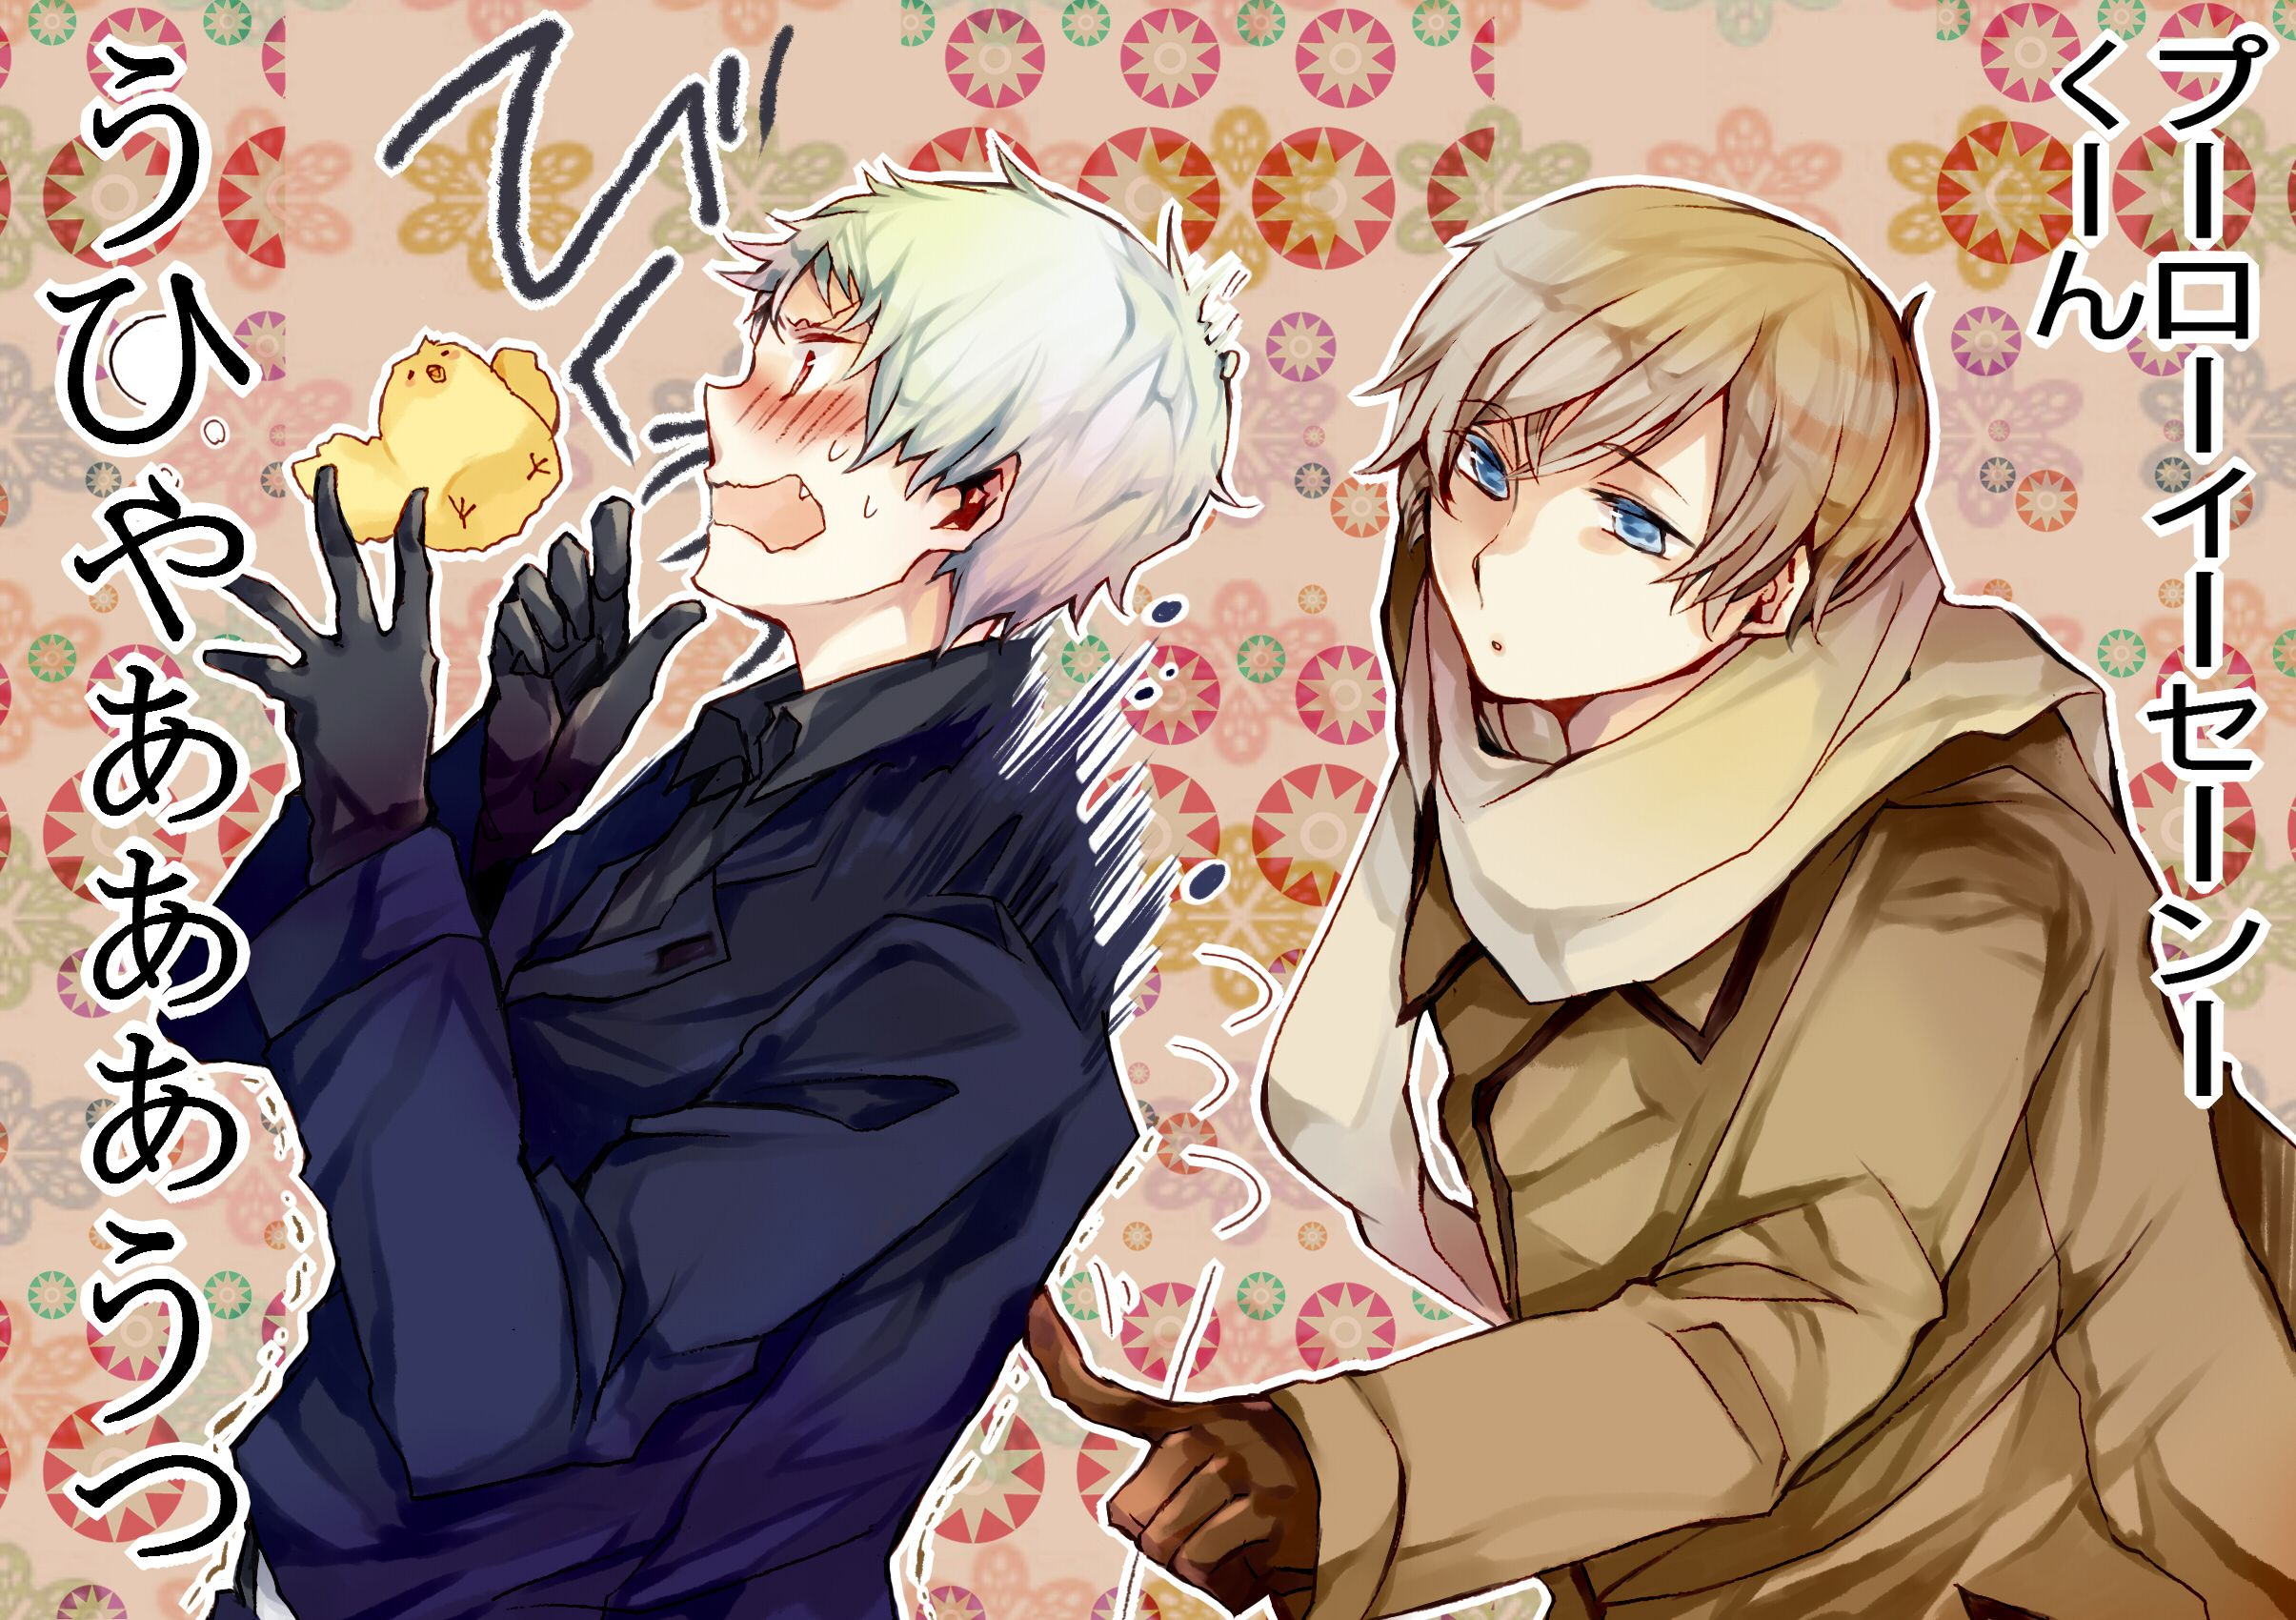 Hetalia |  Russia  Prussia i have no idea what they are saying but look at russia hes so cute!